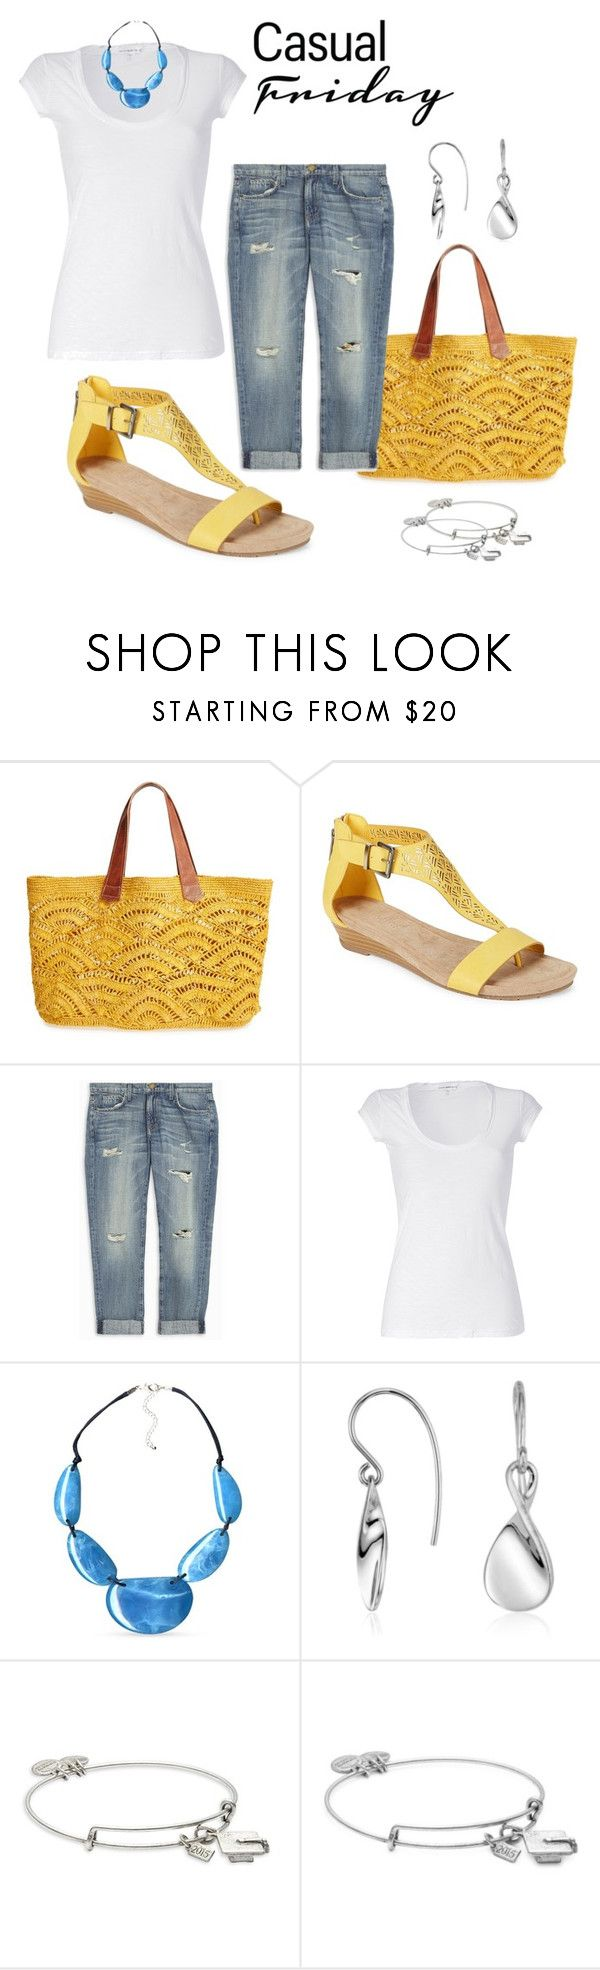 """""""spring - summer casual"""" by citas ❤ liked on Polyvore featuring Mar y Sol, Kenneth Cole Reaction, Current/Elliott, James Perse, Kim Rogers, Blue Nile and Alex and Ani"""